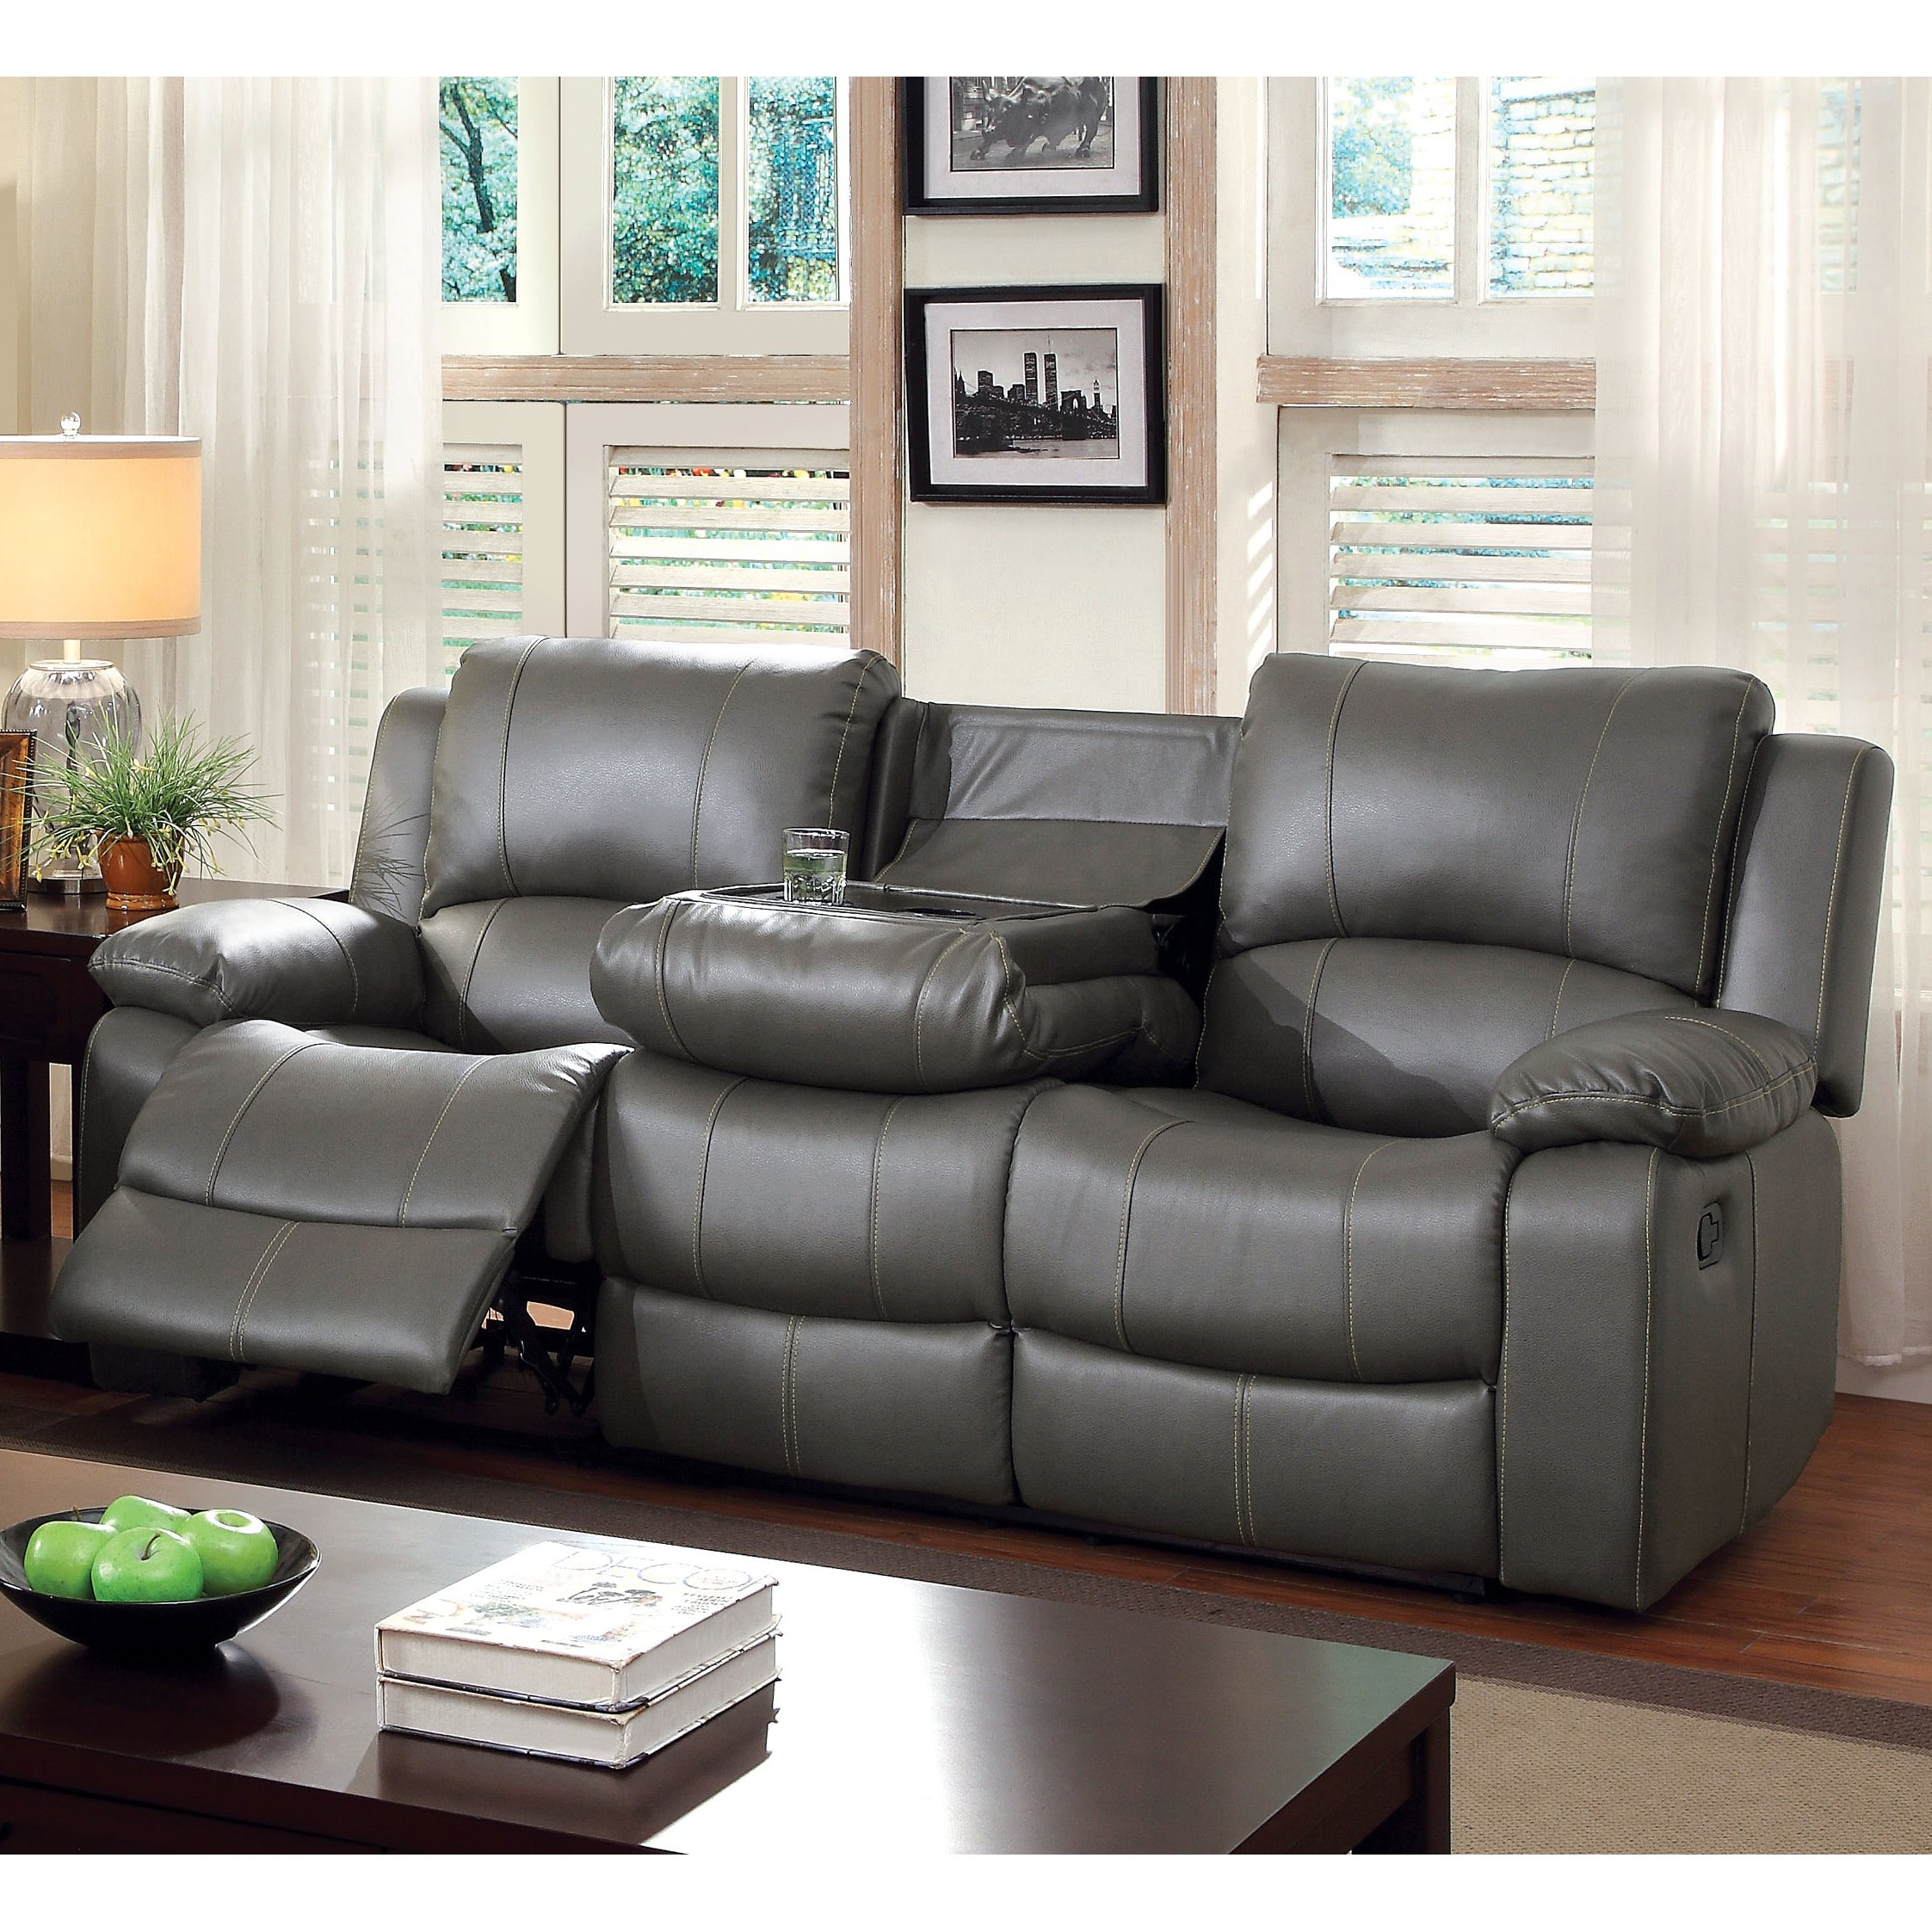 Gray Leather Reclining Sofa – Home Interior Design Ideas